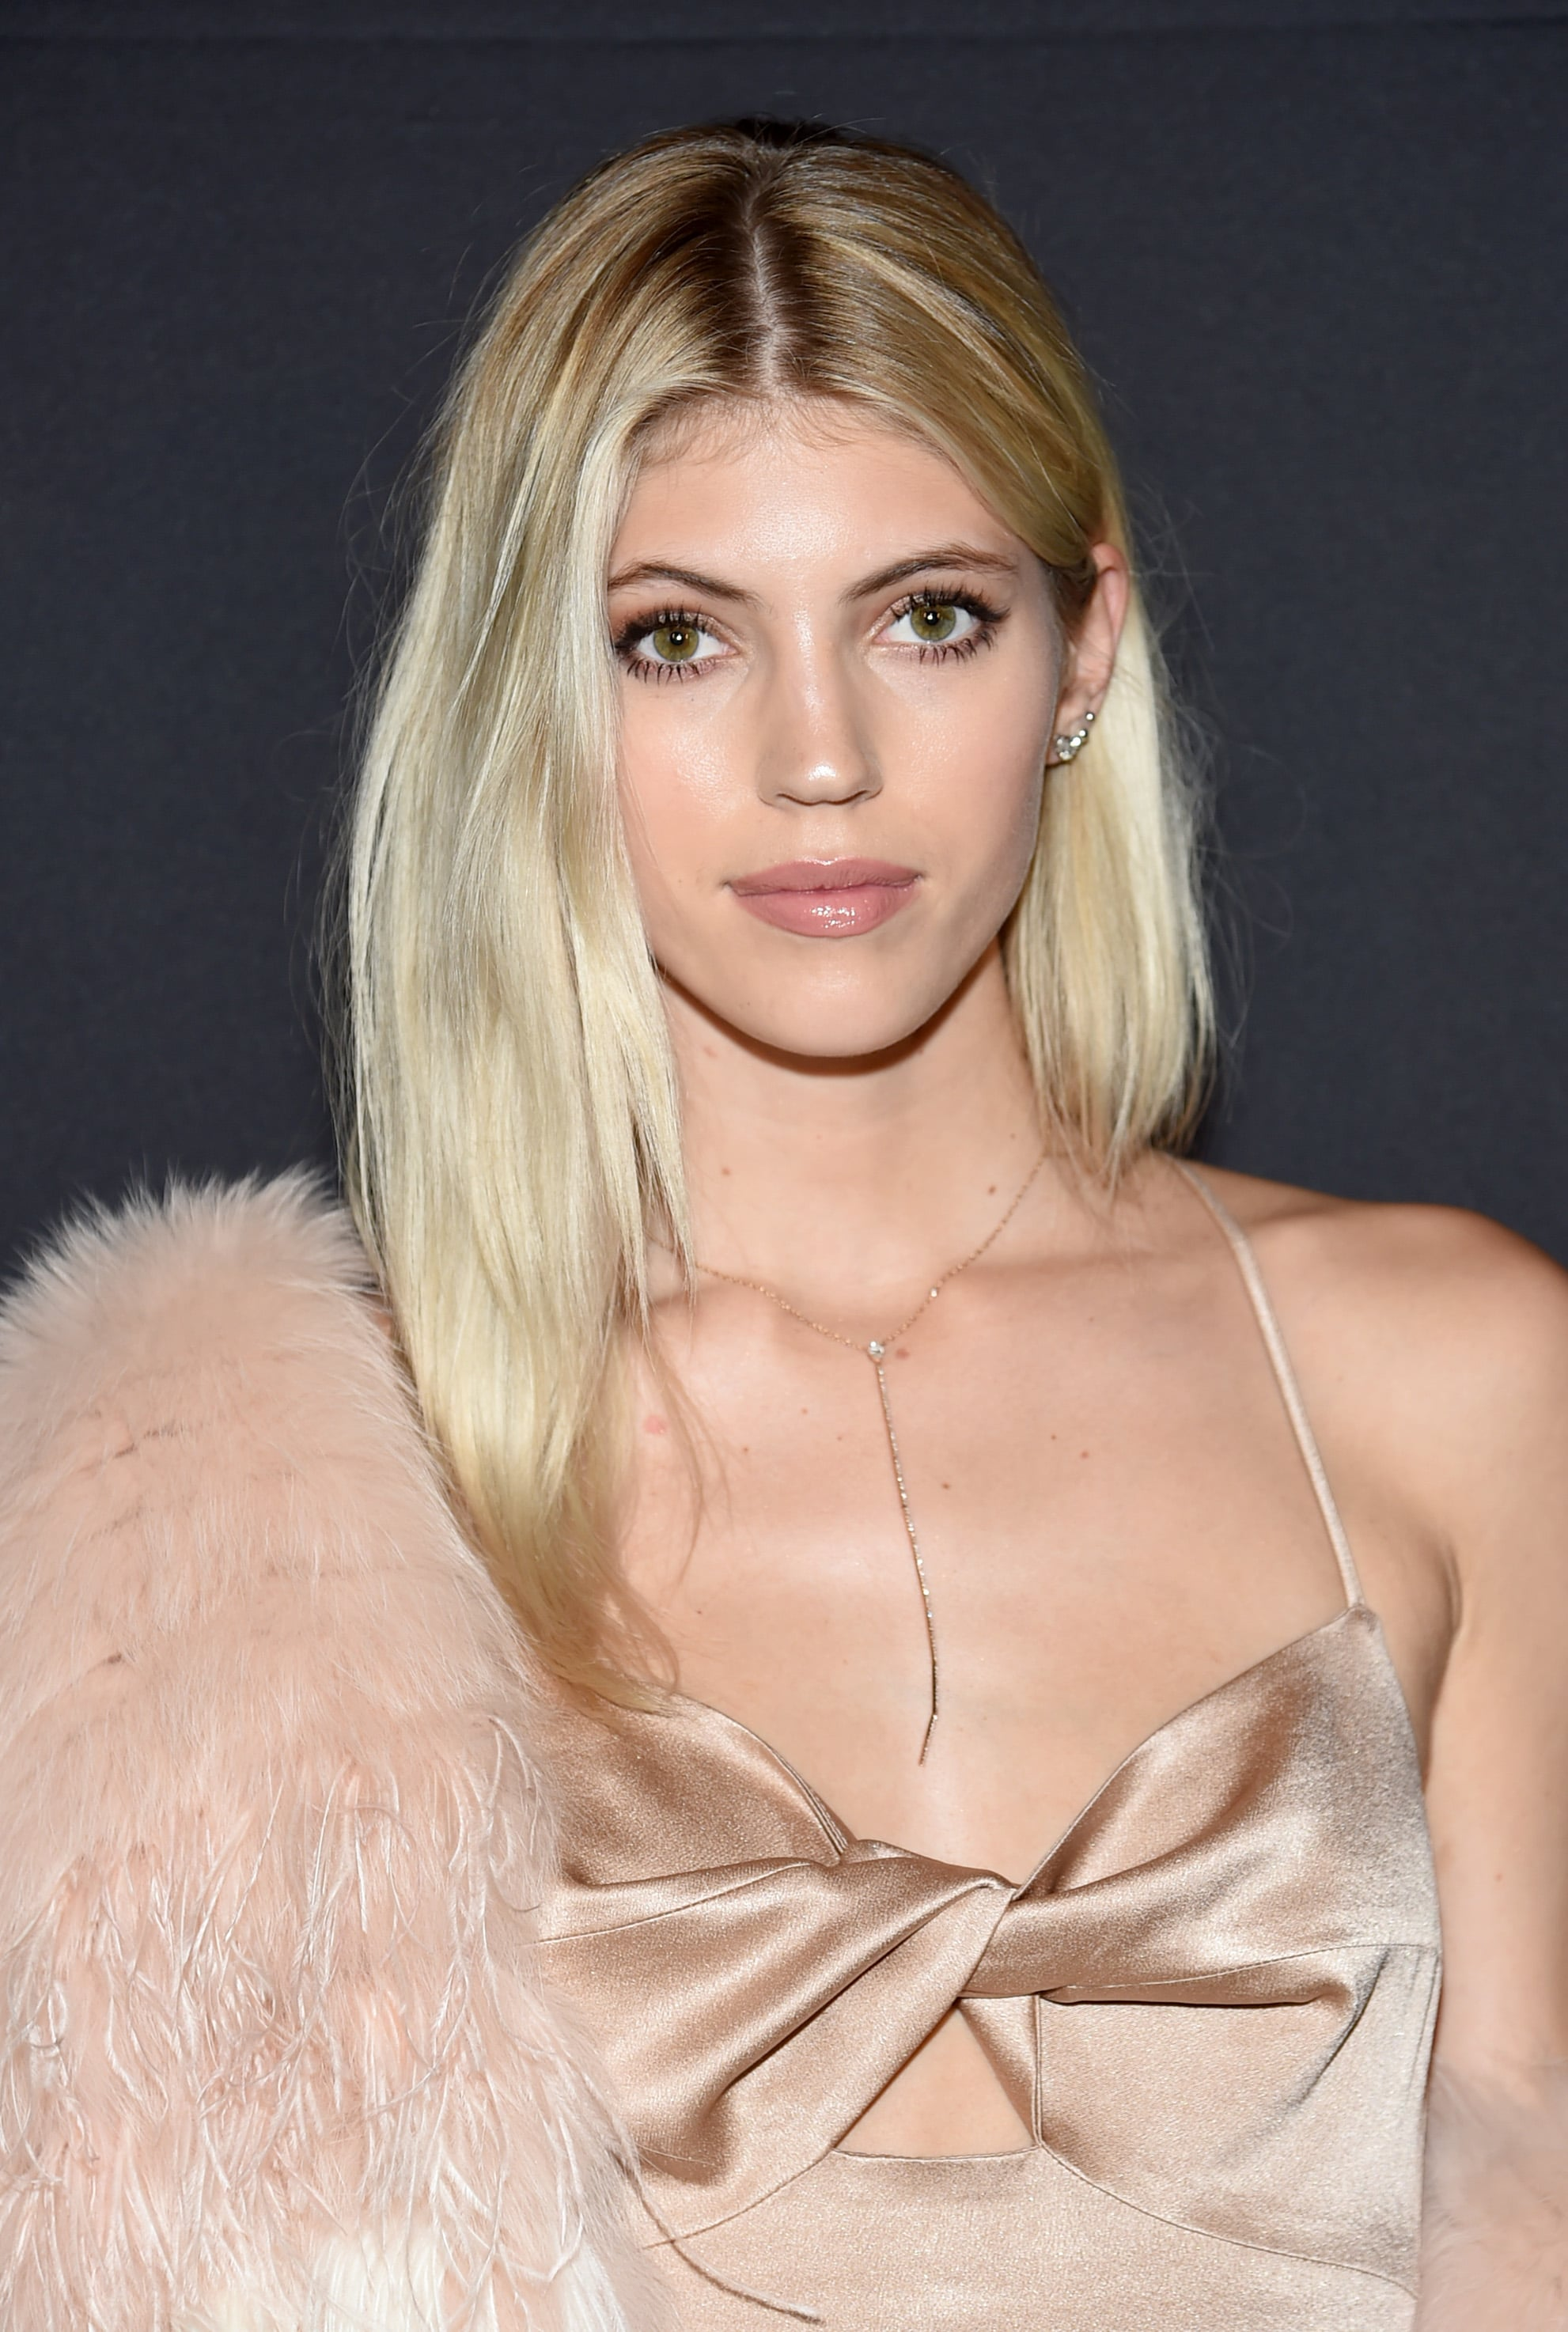 NEW YORK, NY - FEBRUARY 11:  Devon Windsor attends the Maybelline New York x V Magazine Party at the Nomo Soho Hotel on February 11, 2018 in New York City.  (Photo by Jamie McCarthy/Getty Images for Maybelline New York)